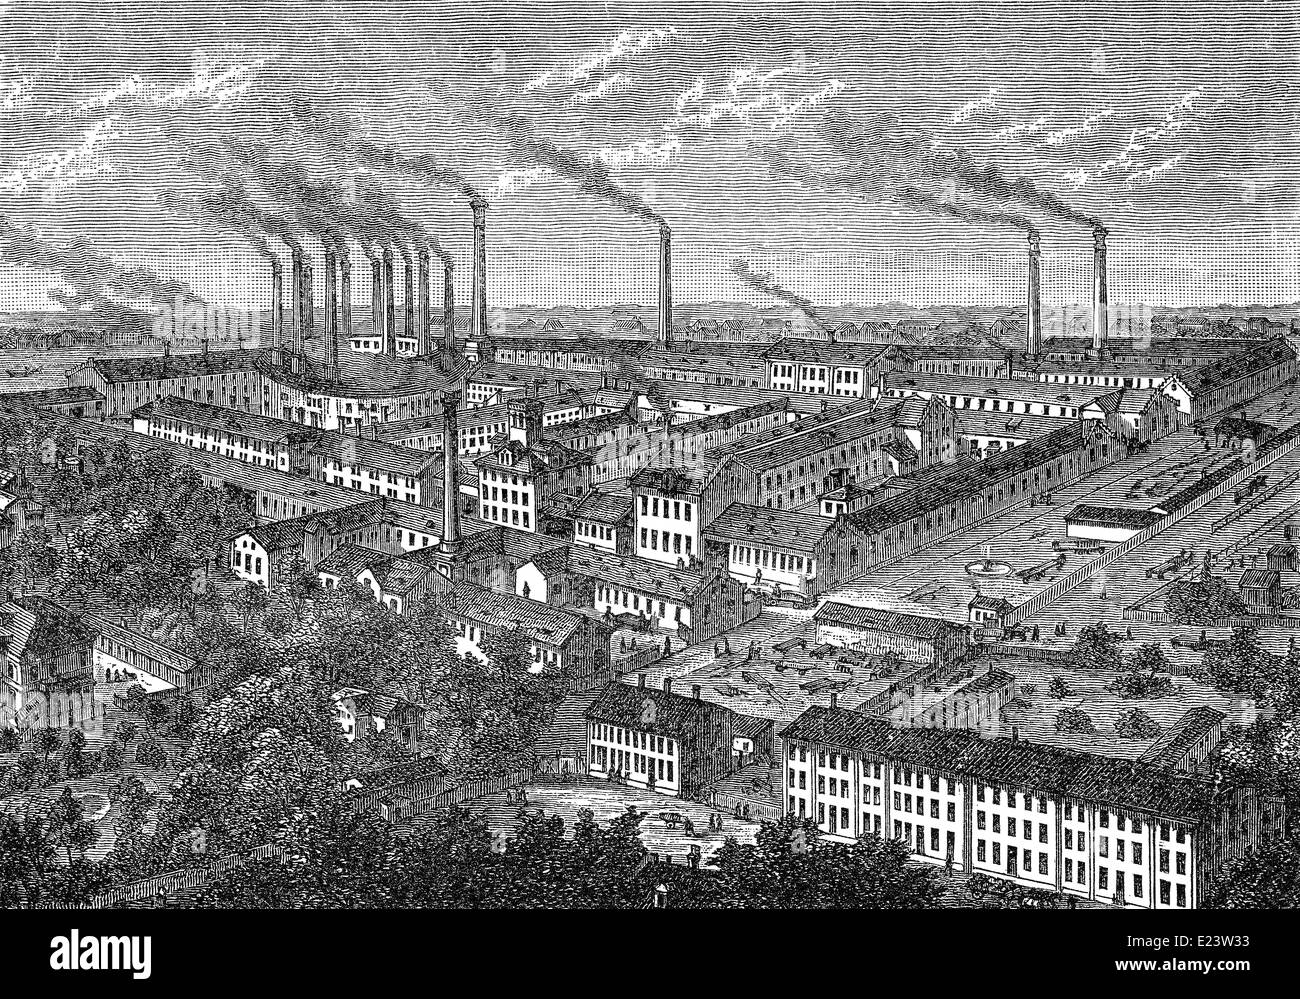 synthetic ultramarine manufacturing site, Nuremberg, Germany, 1886 - Stock Image